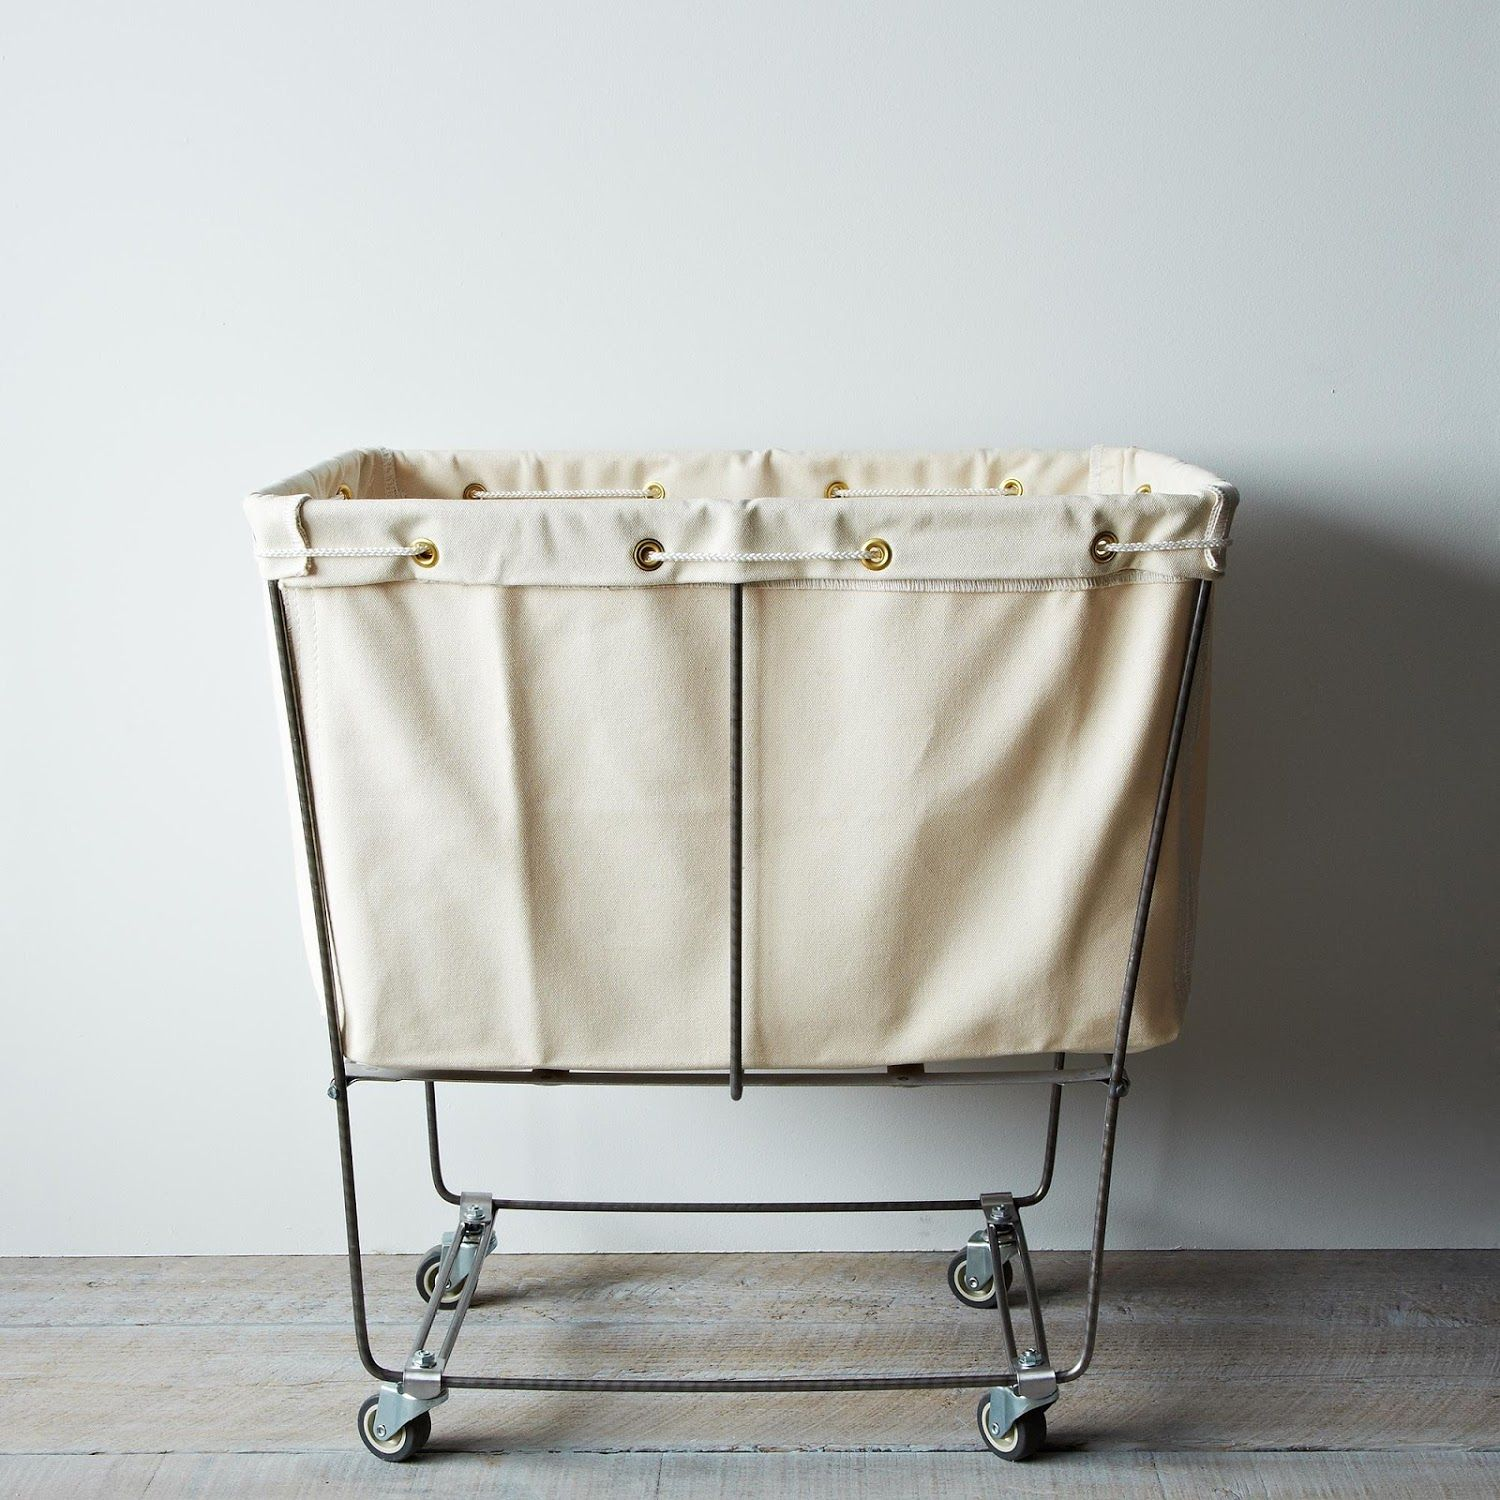 Elevated Laundry Basket Updated To Say I Bought This And Love It